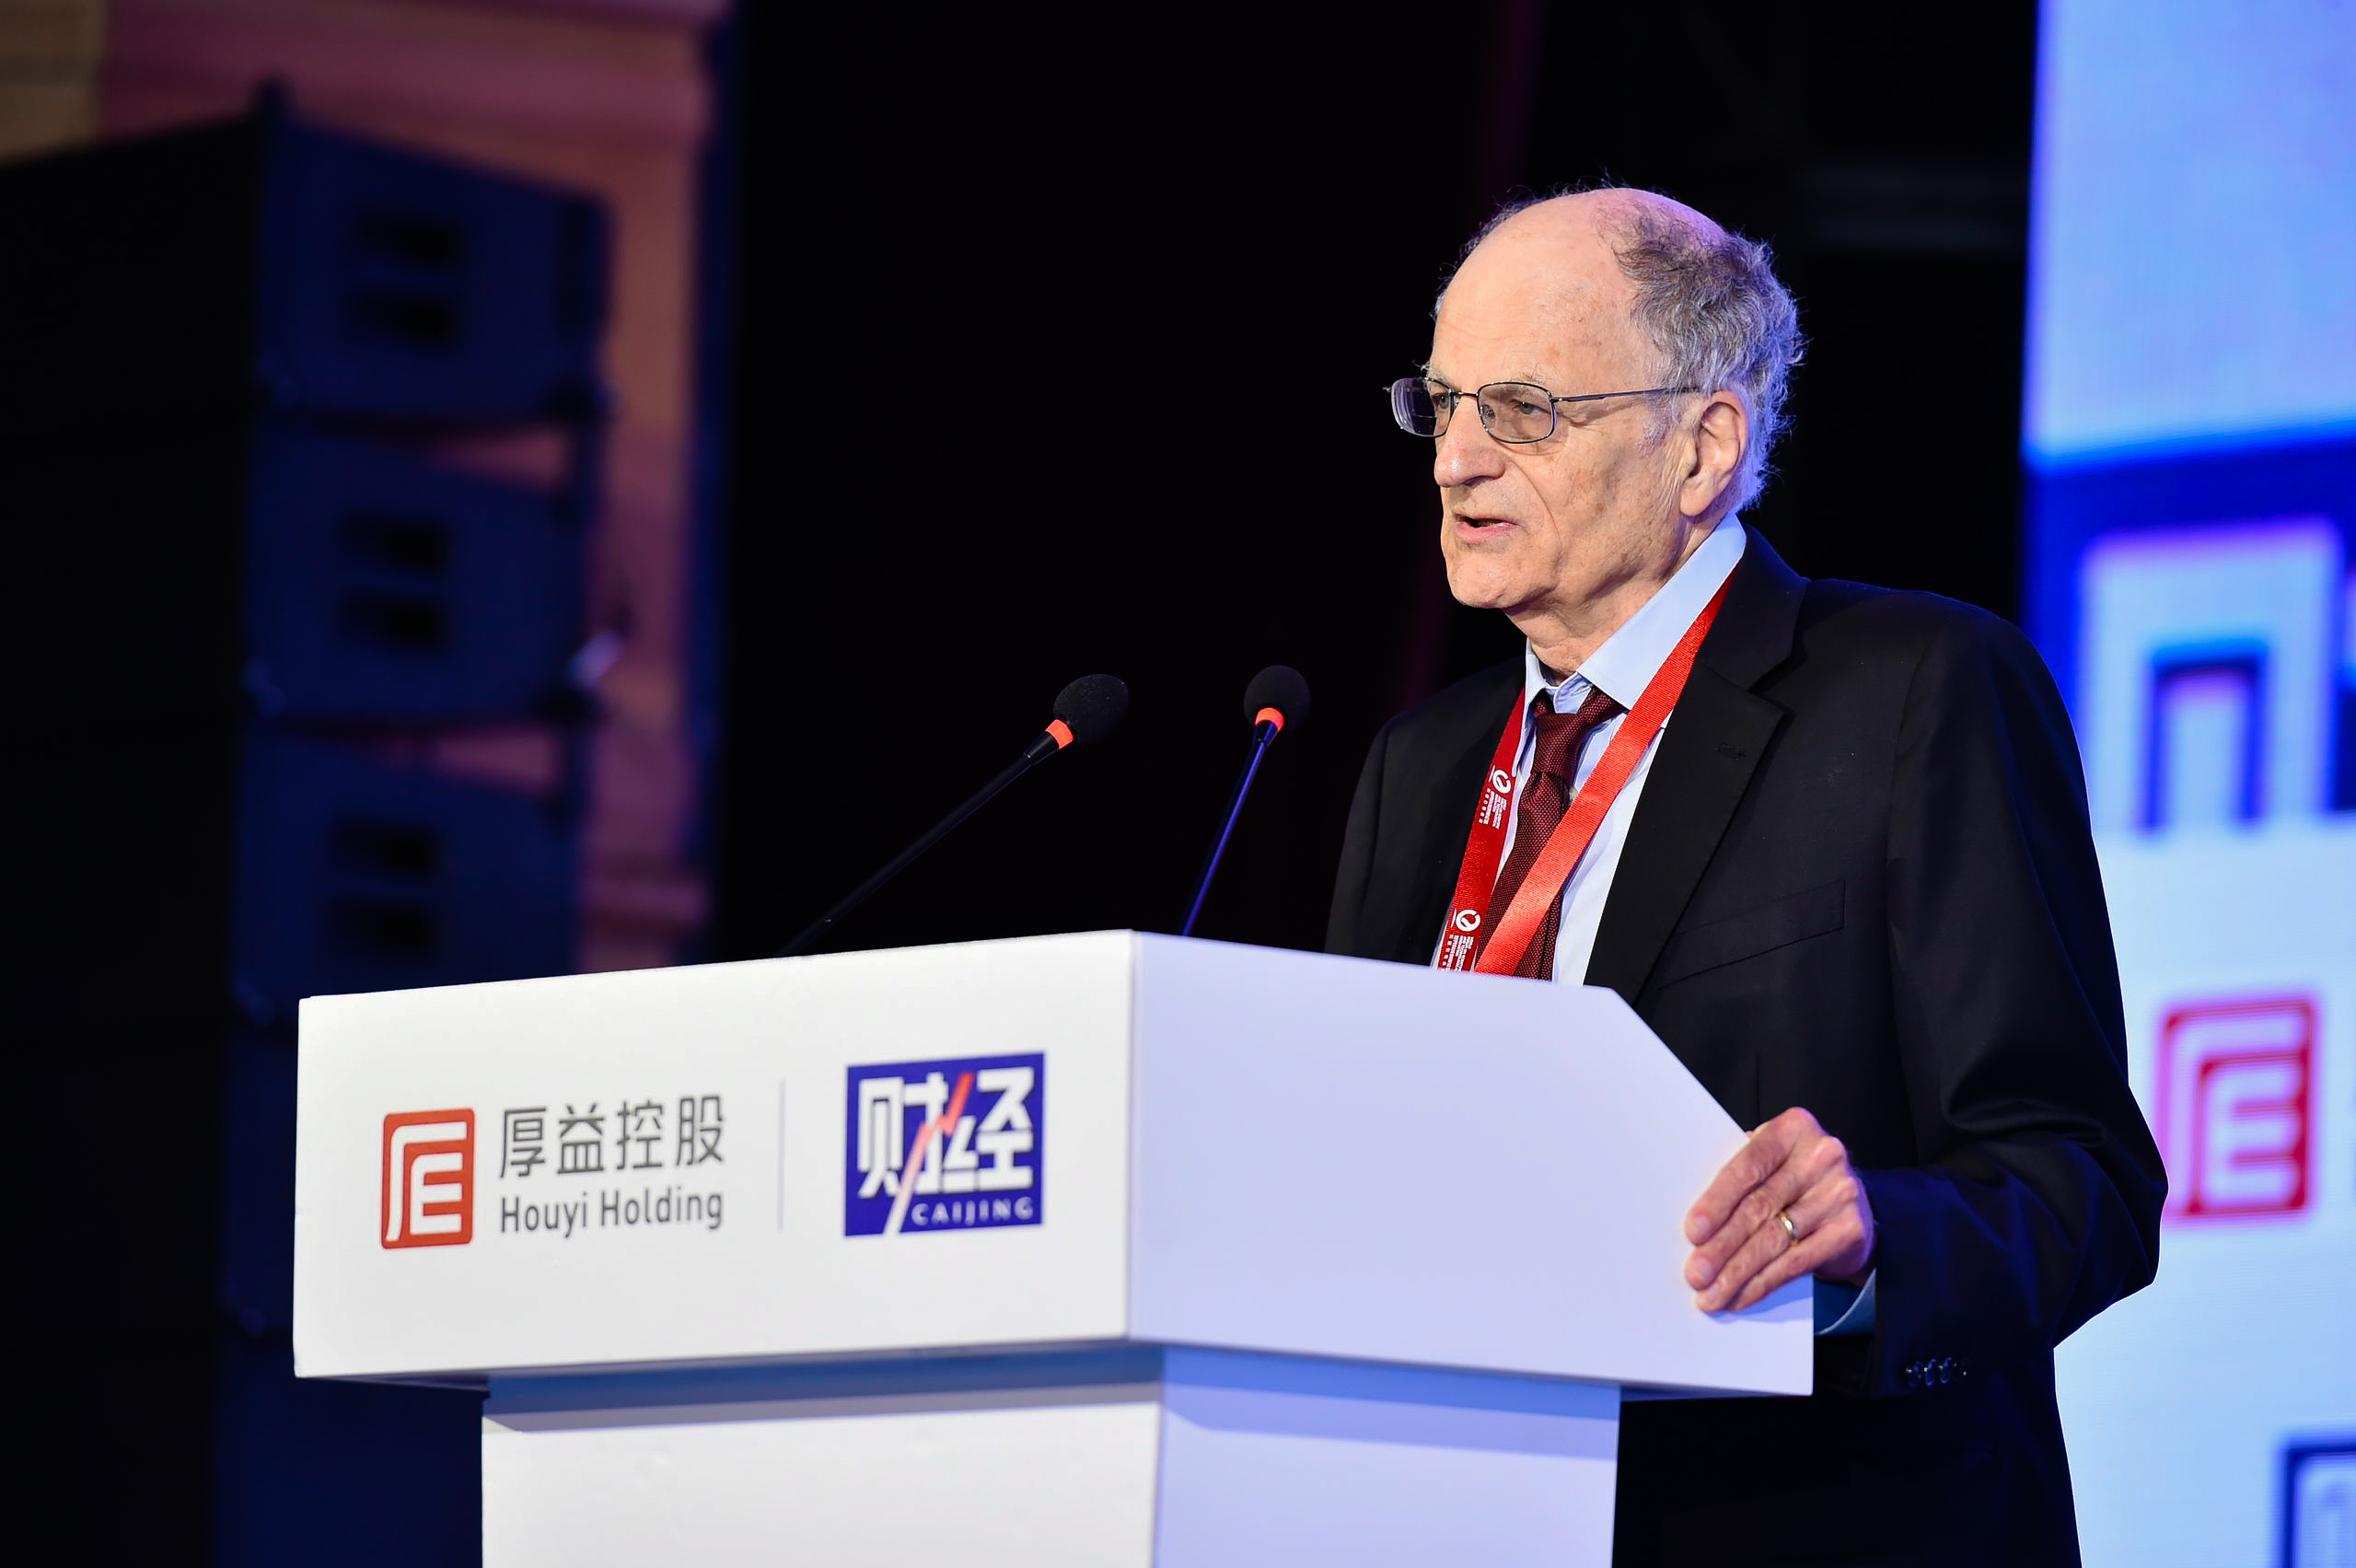 Thomas J. Sargent, winner of the 2011 Nobel Prize in Economics, speaks at the 2018 World Forum on Scientific and Technological Innovation in Beijing, Aug. 11, 2018. [Photo courtesy of the 2018 World Forum on Scientific and Technological Innovation]